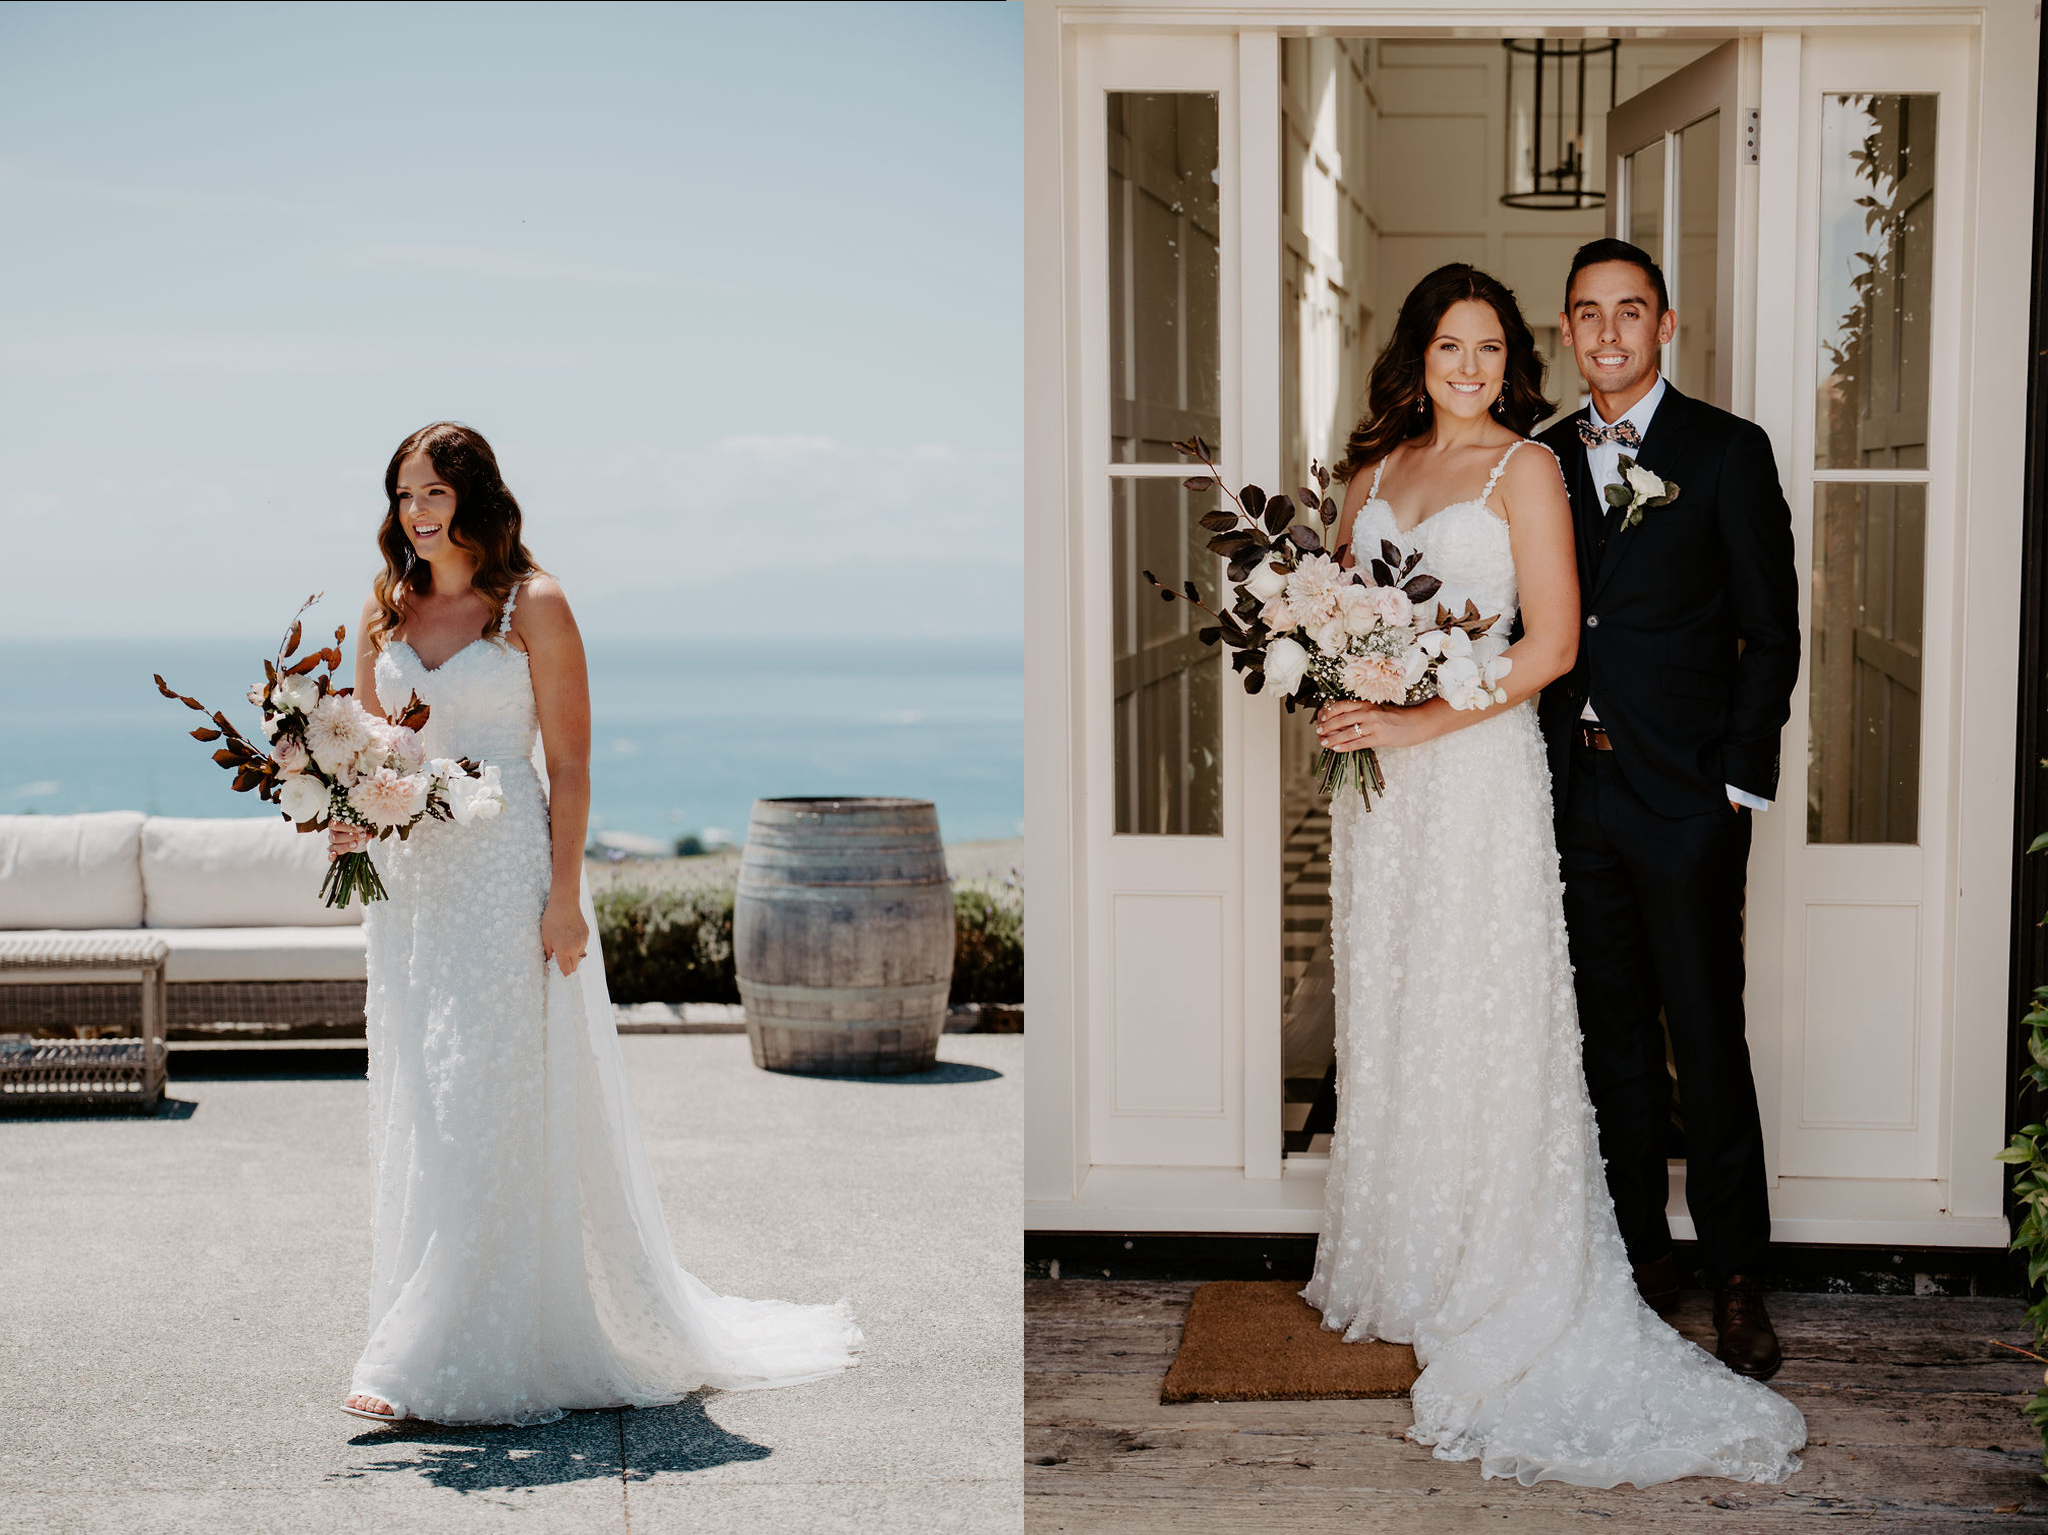 Award Winning Bridal Hair Stylist, Waiheke Wedding , Waiheke hairandmakeup, Mudbrick bride